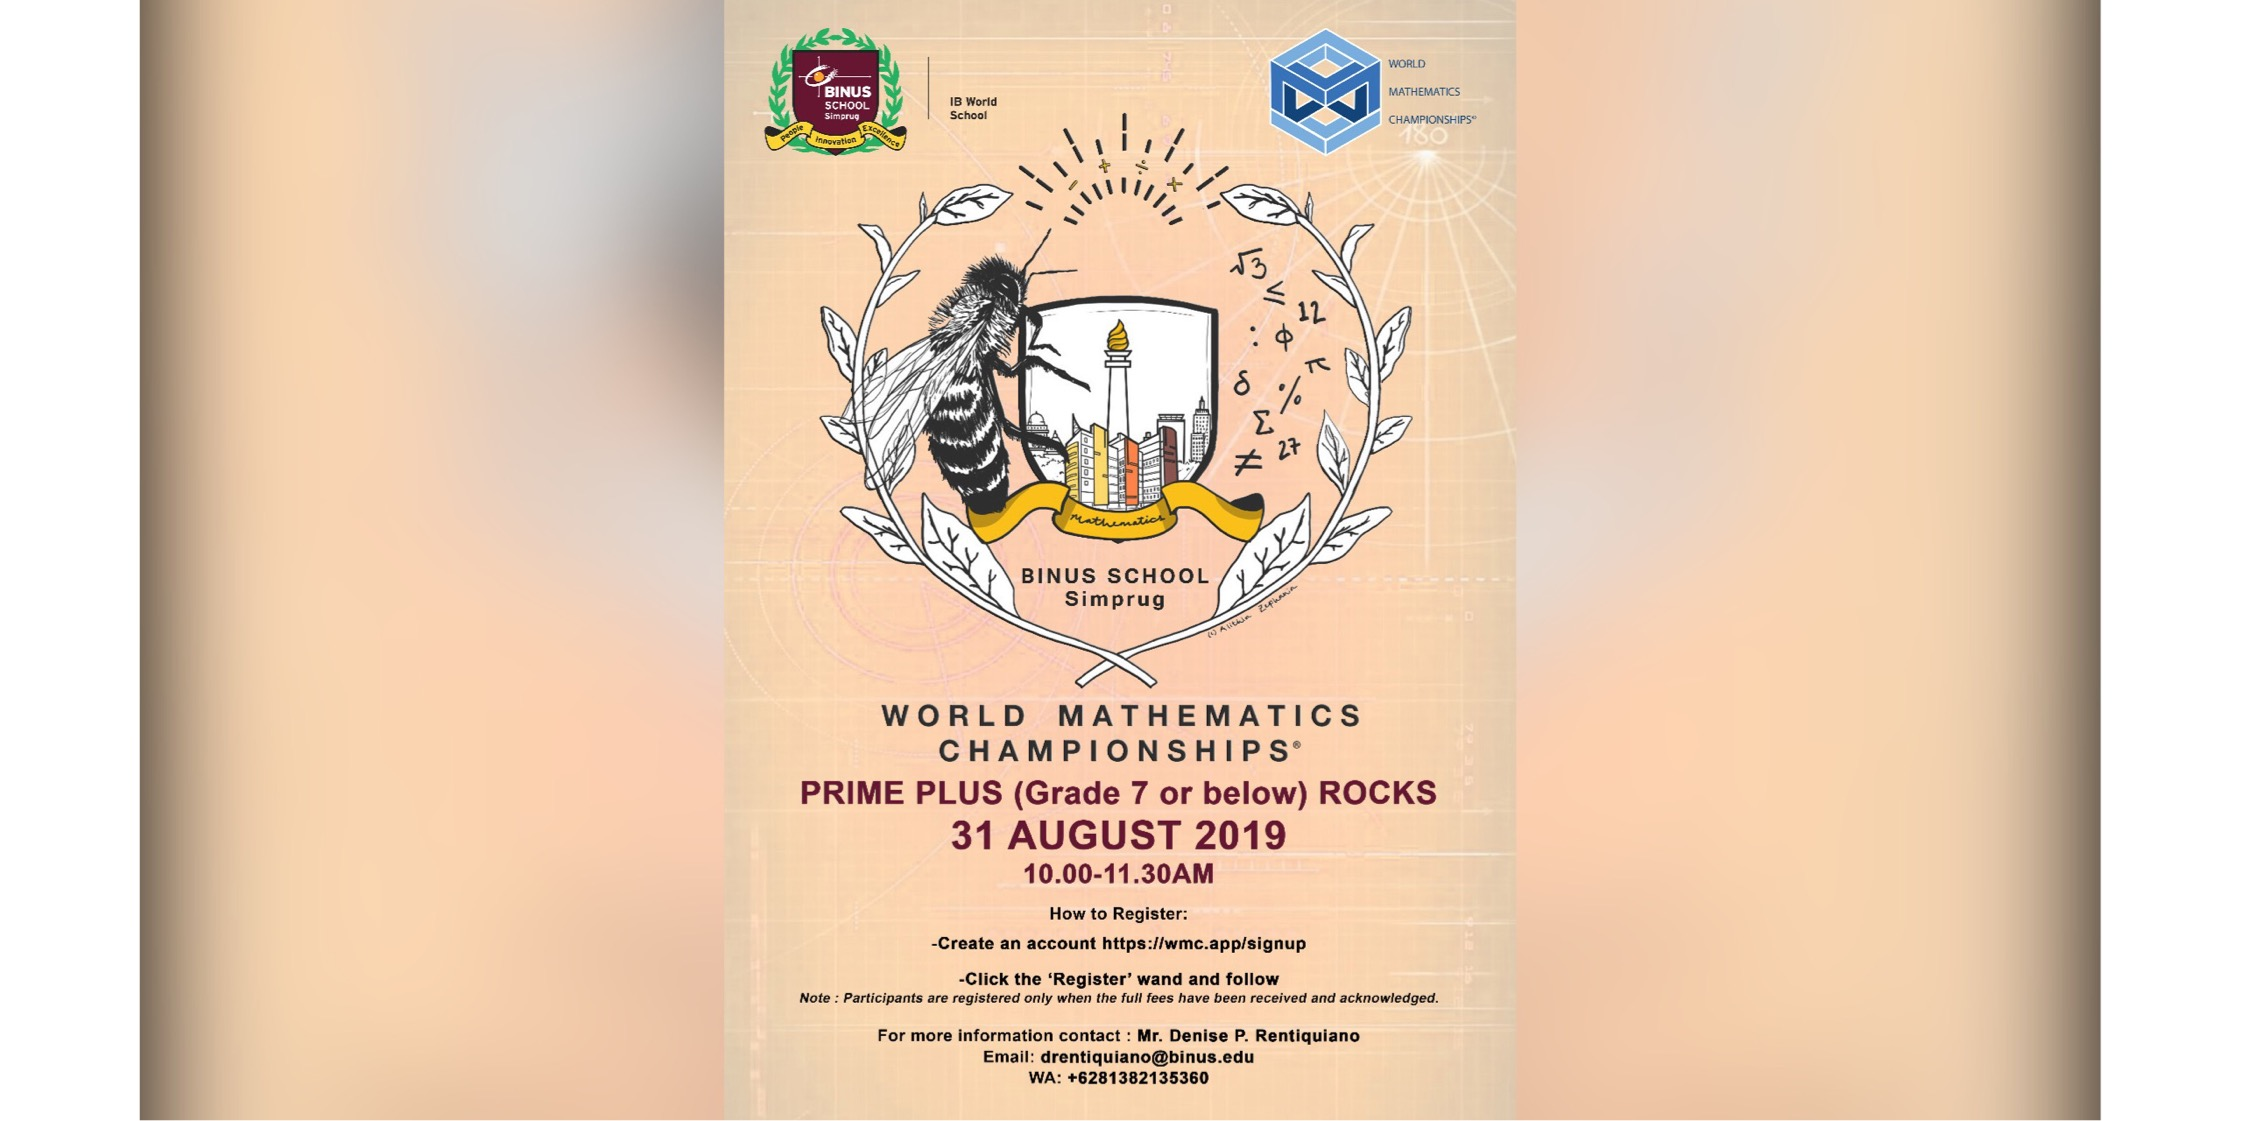 World Mathematics Championships 2019